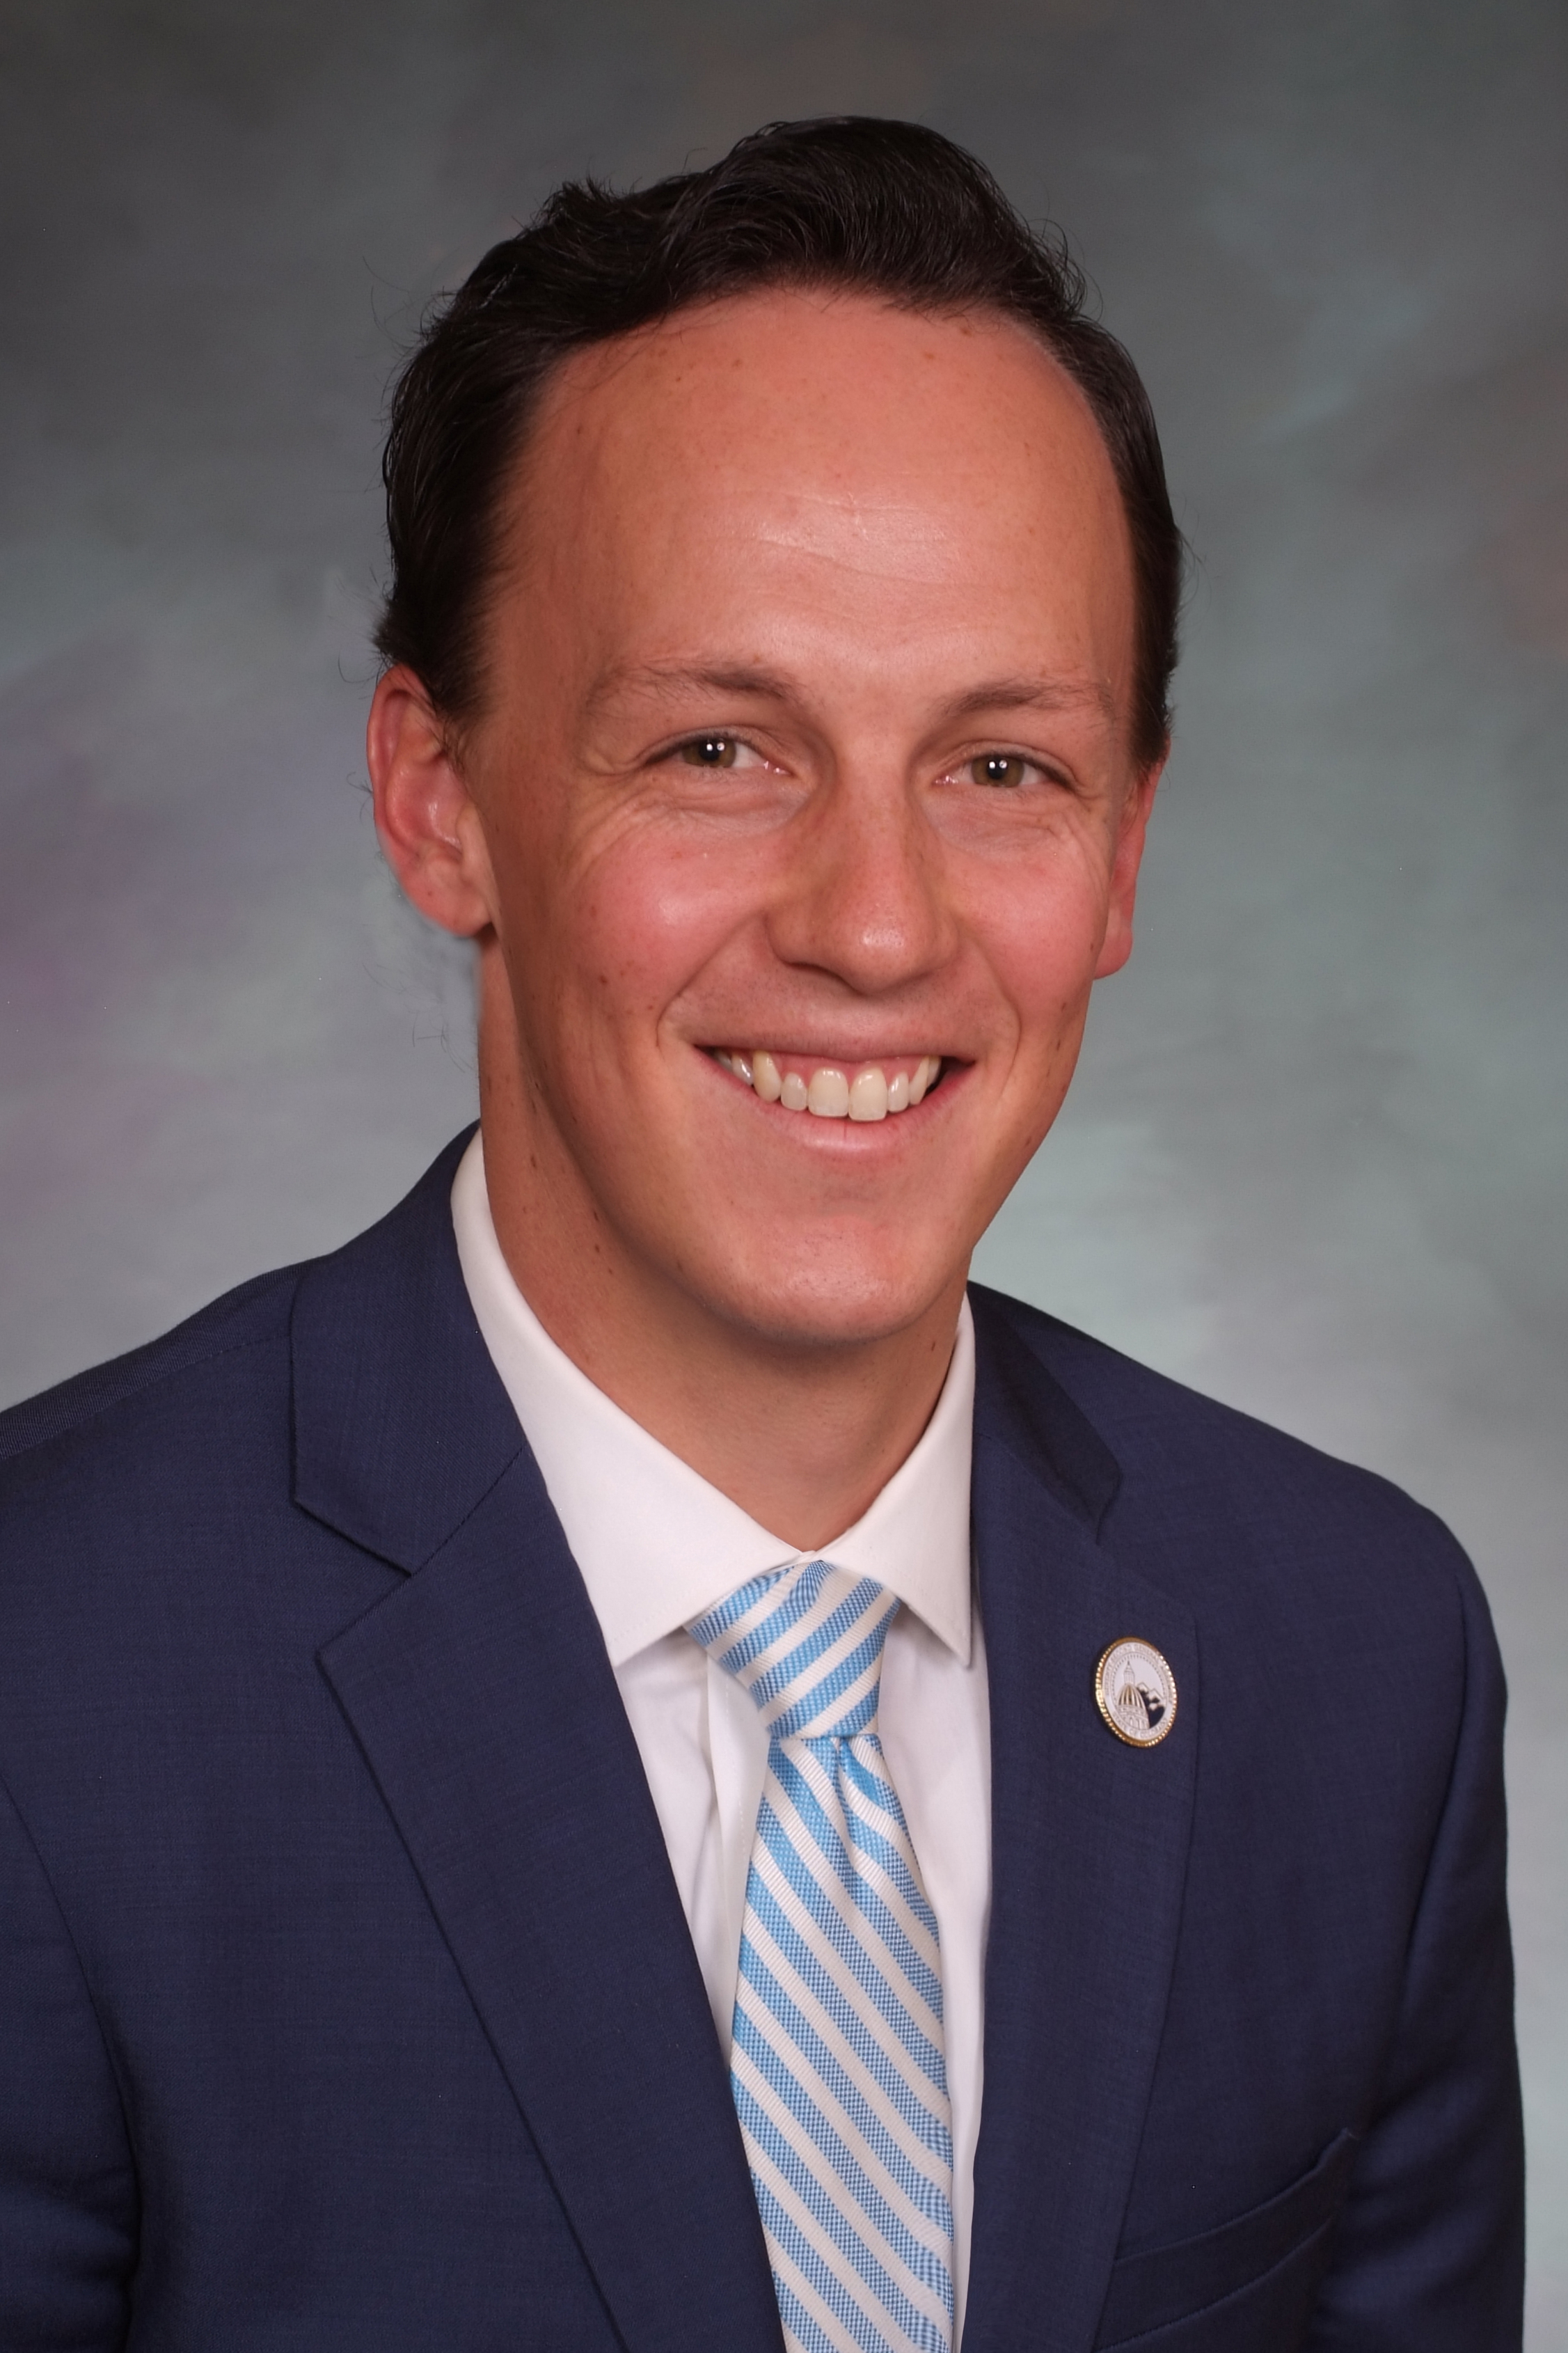 Rep. Dylan Roberts - I was sworn in as a Colorado State Representative on November 13, 2017. During my first year in the legislature, I was the primary sponsor of twelve bills and six of them were successfully passed and sent to the Governor.On November 6, 2018, the voters of Eagle and Routt Counties elected me to a two-year term by a margin of 60%-36%. During the 2019 and 2020 Legislative Sessions I am proud to serve as the Chair of the House Rural Affairs & Agriculture Committee, Chair of the Capital Development Committee, and as a member of the House Judiciary Committee.During the 2019 legislative session, I was the prime sponsor of 35 bills, 30 of which became law. Some of those included a first-in-the-nation state public health insurance option, capping insulin costs, protecting Colorado's water, and much more.You can read more about my bills at my general assembly webpage.